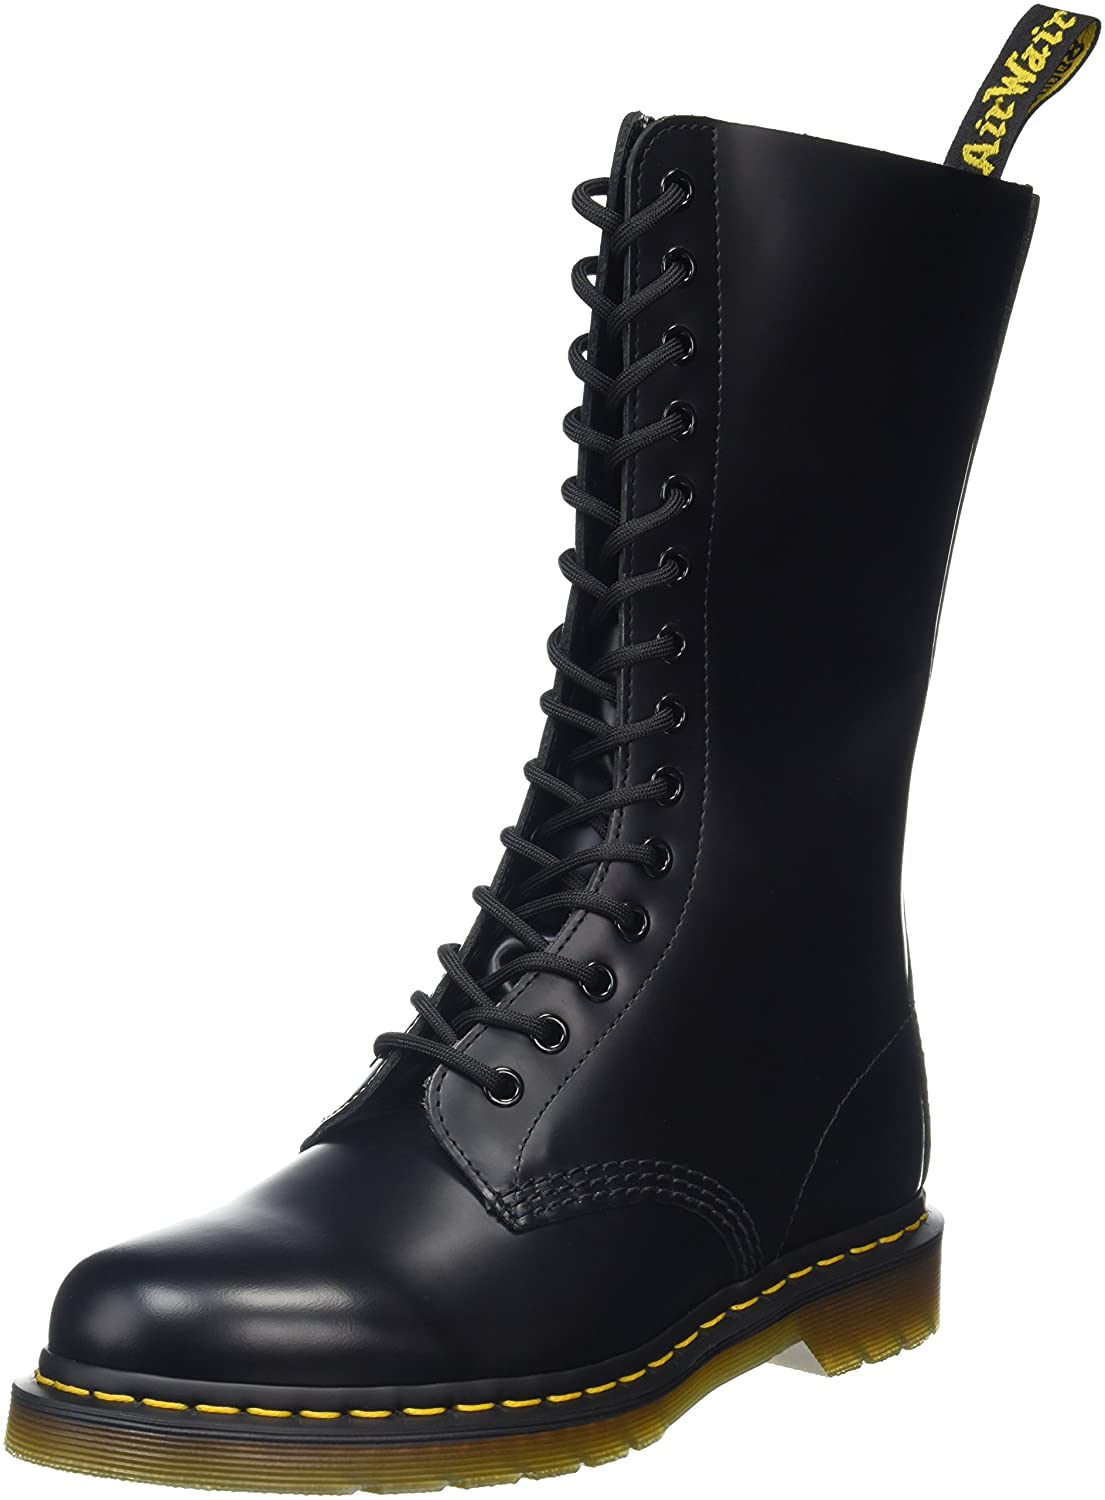 Dr. Boot Martens Original 14 Eye Boot Dr. B000NX40UK 13 F(M) UK|Black 009987